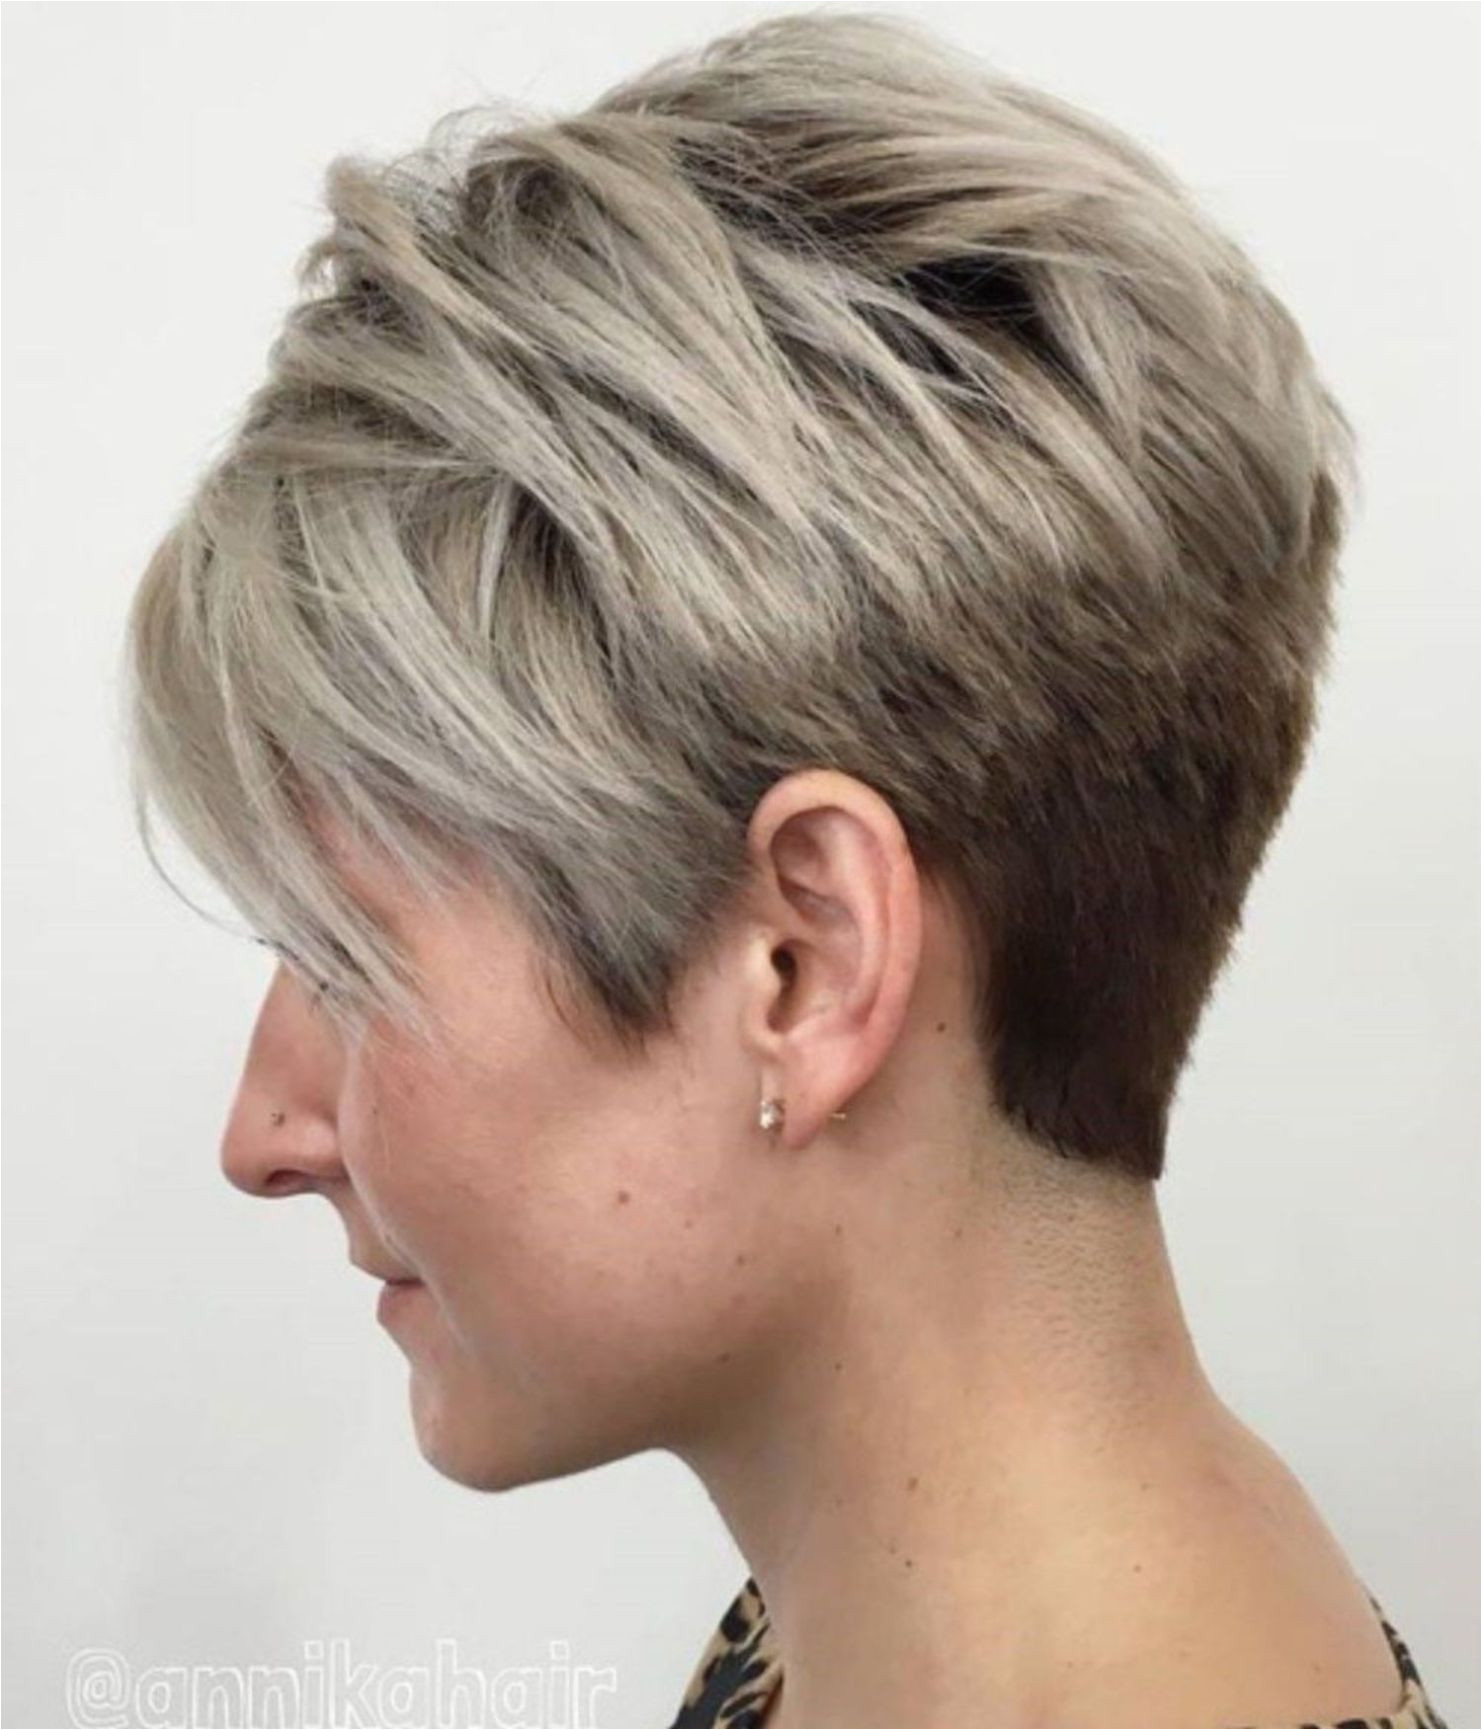 Tapered Balayage Pixie Cut Hairstyles Short Hairstyles For Women Hairstyle Ideas Hairdos